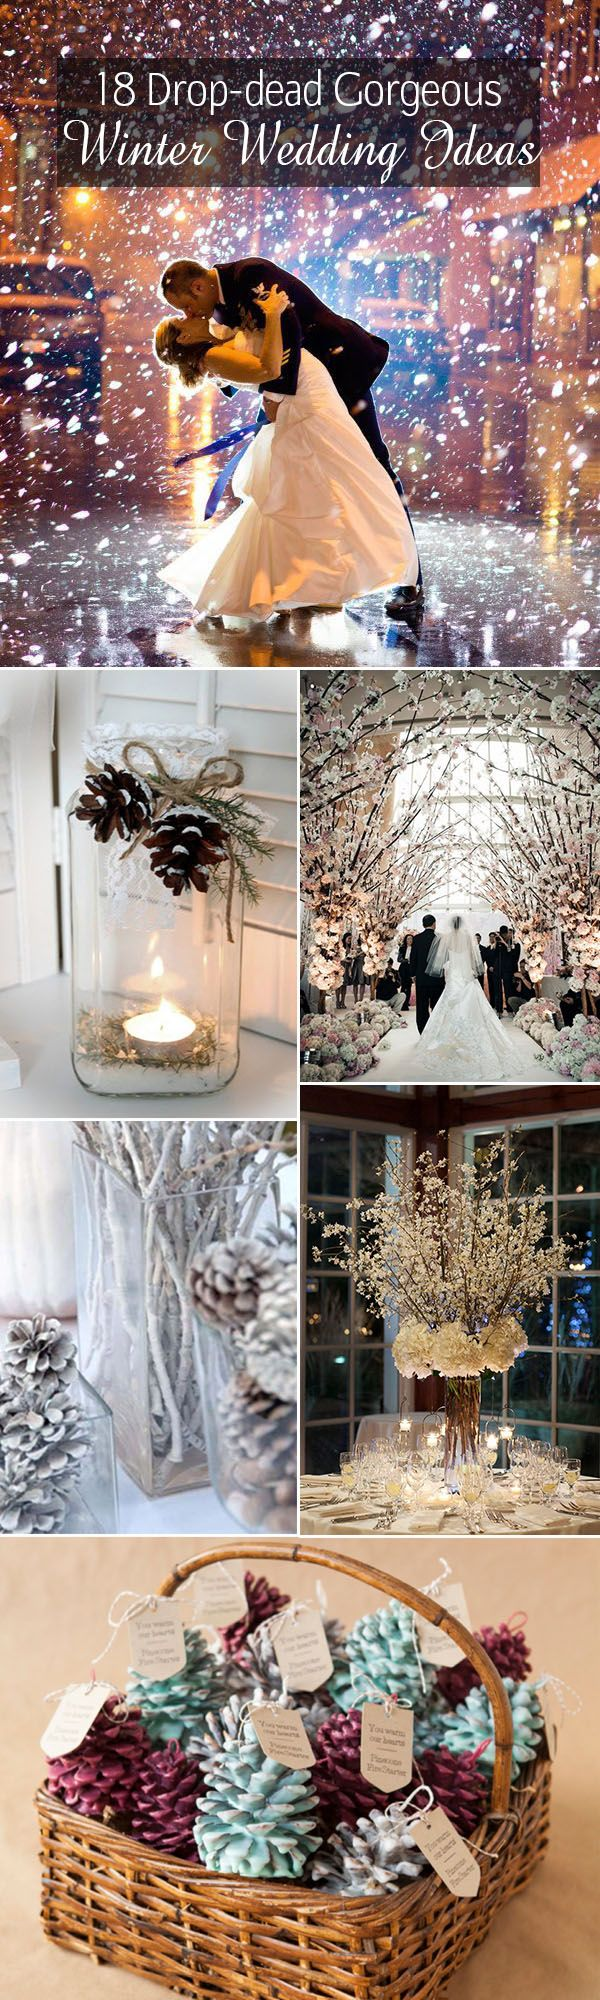 top 18 winter wedding ideas for your big day